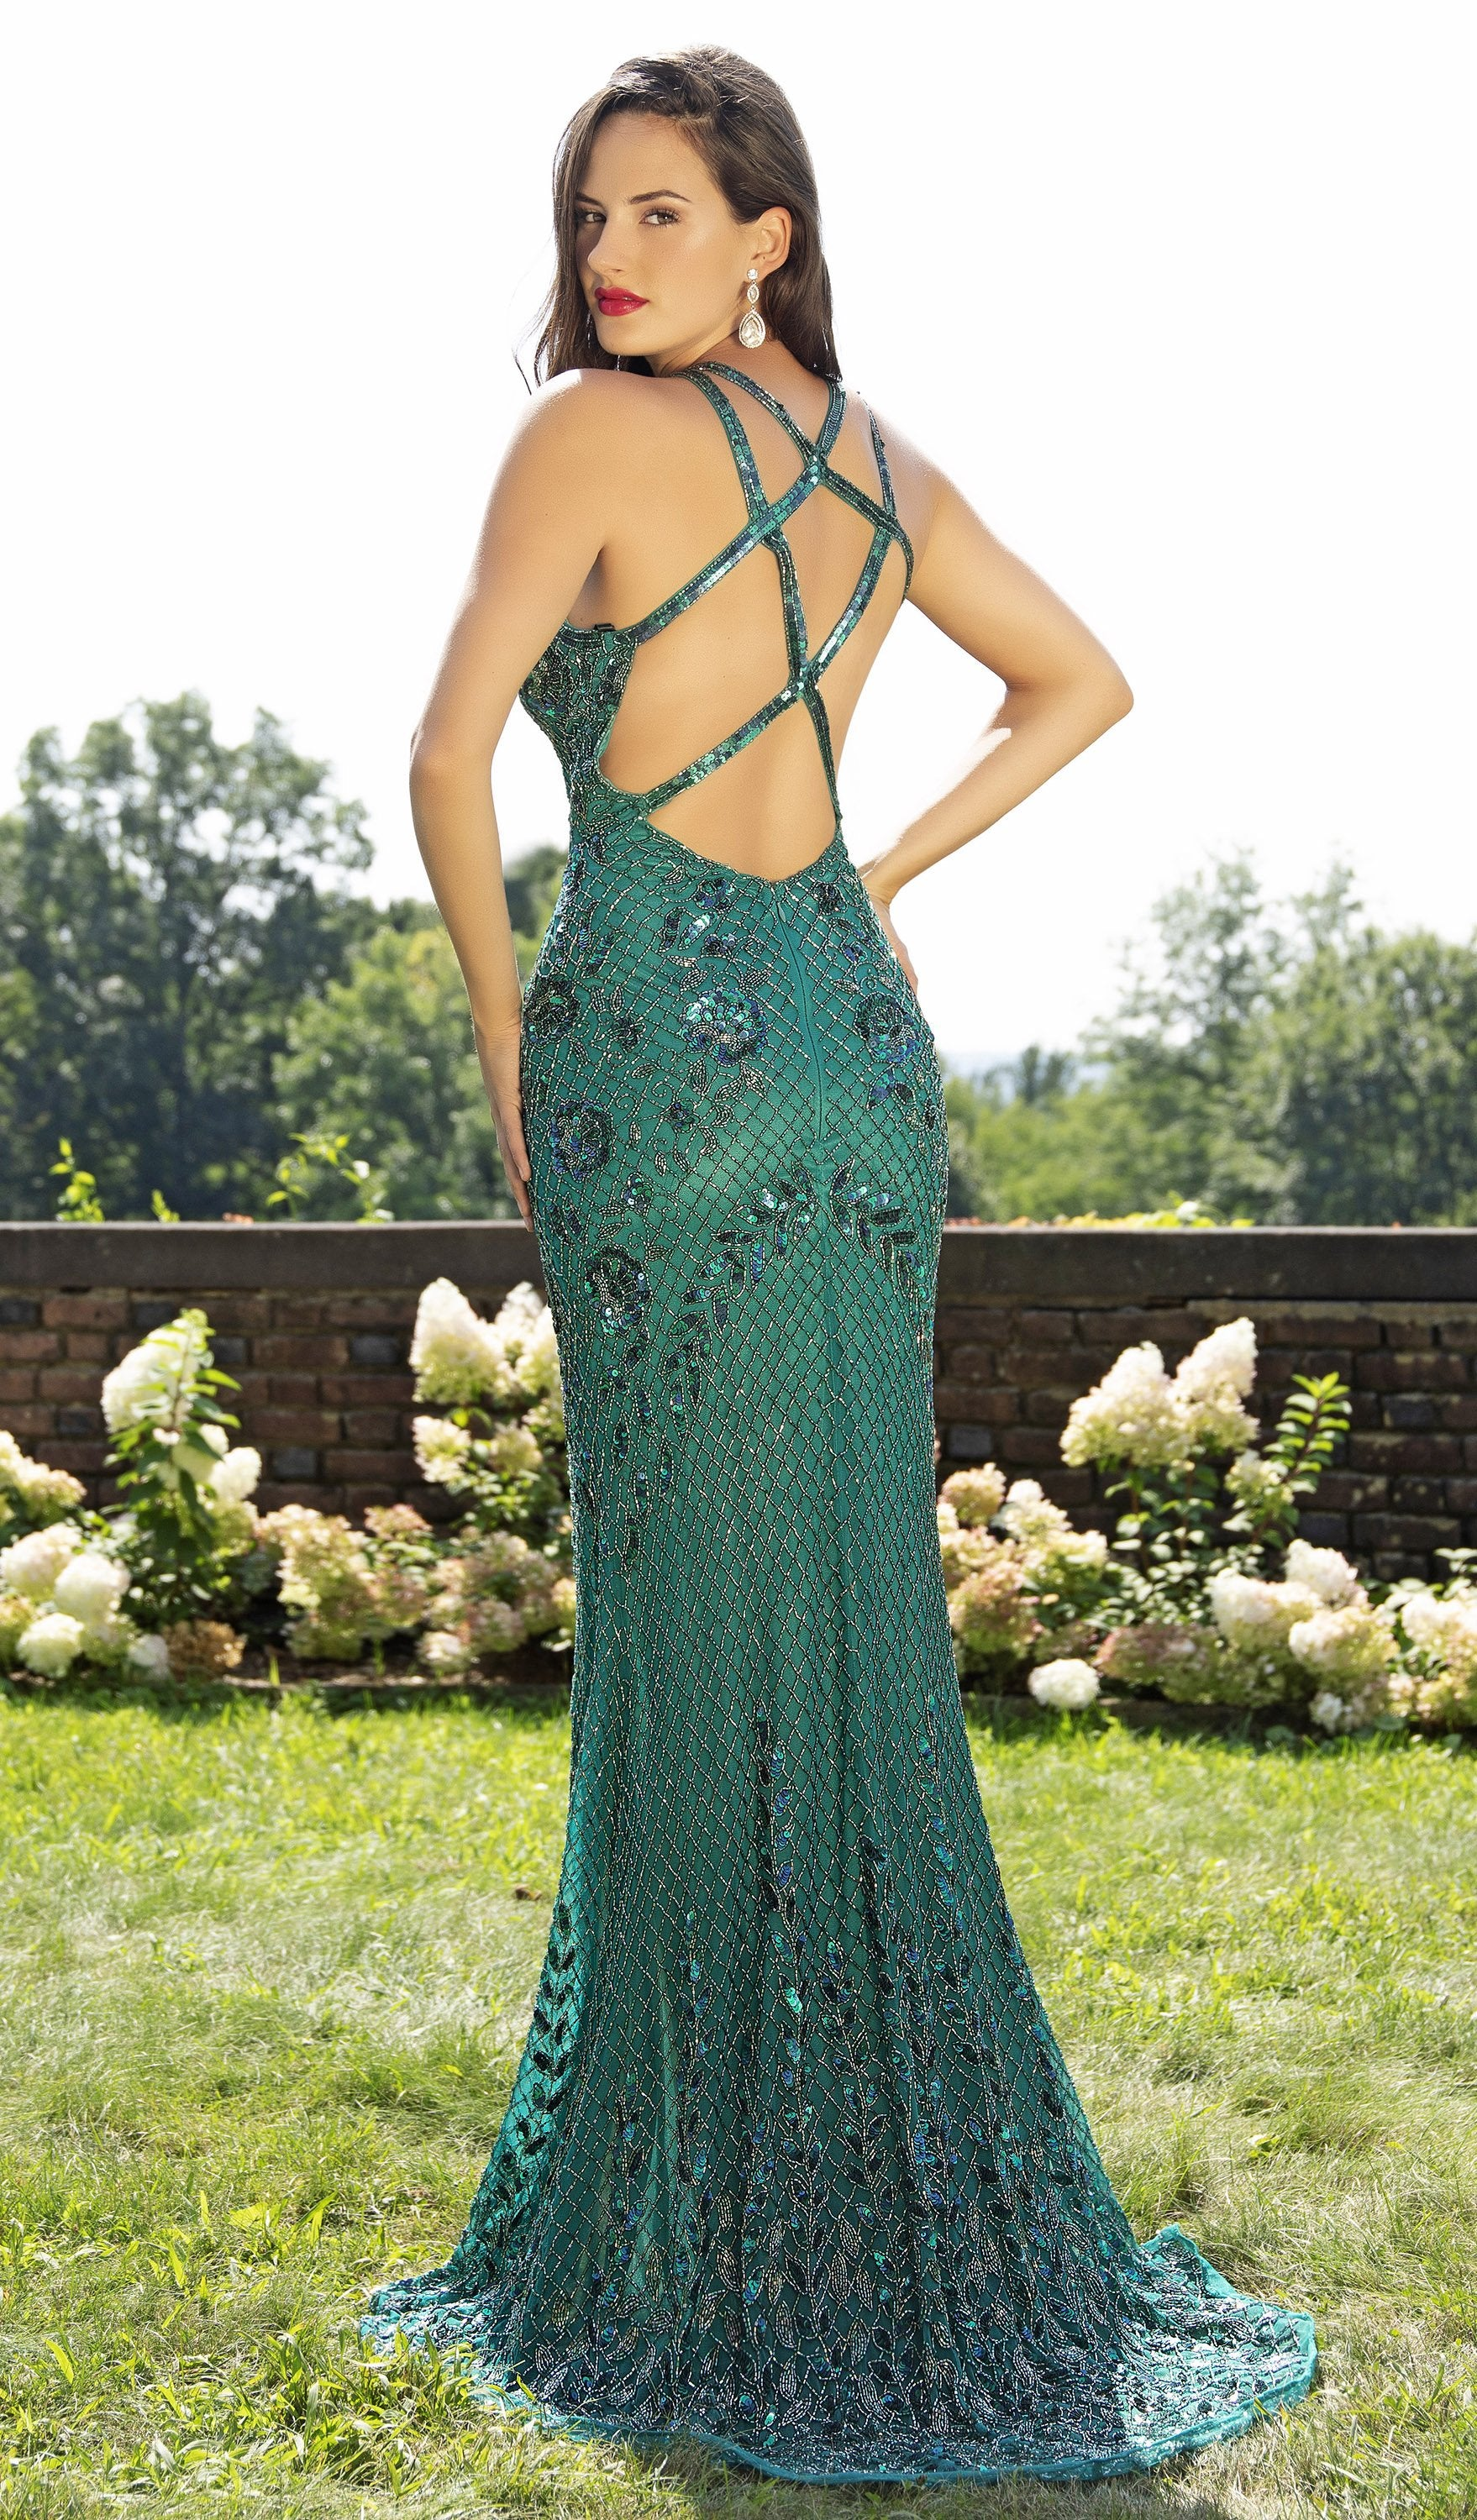 Primavera Couture - 3202 Embellished Plunging V-neck Trumpet Dress In Green